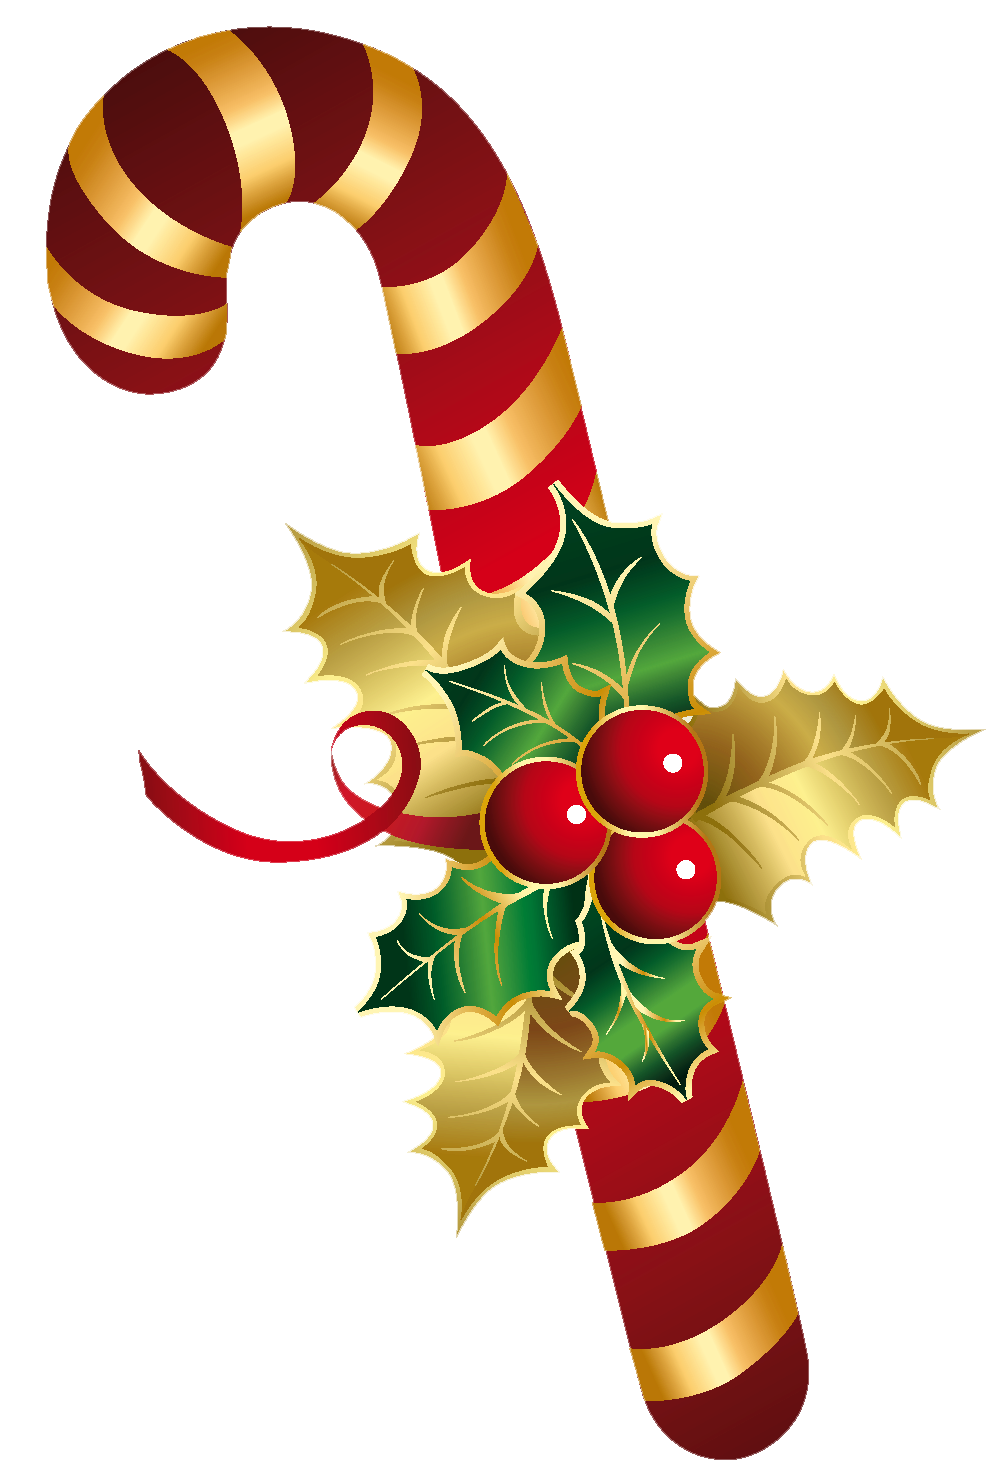 Candy Cane With Holly Transparent Png Clip Art Christmas Drawing Christmas Wallpaper Elf Christmas Decorations